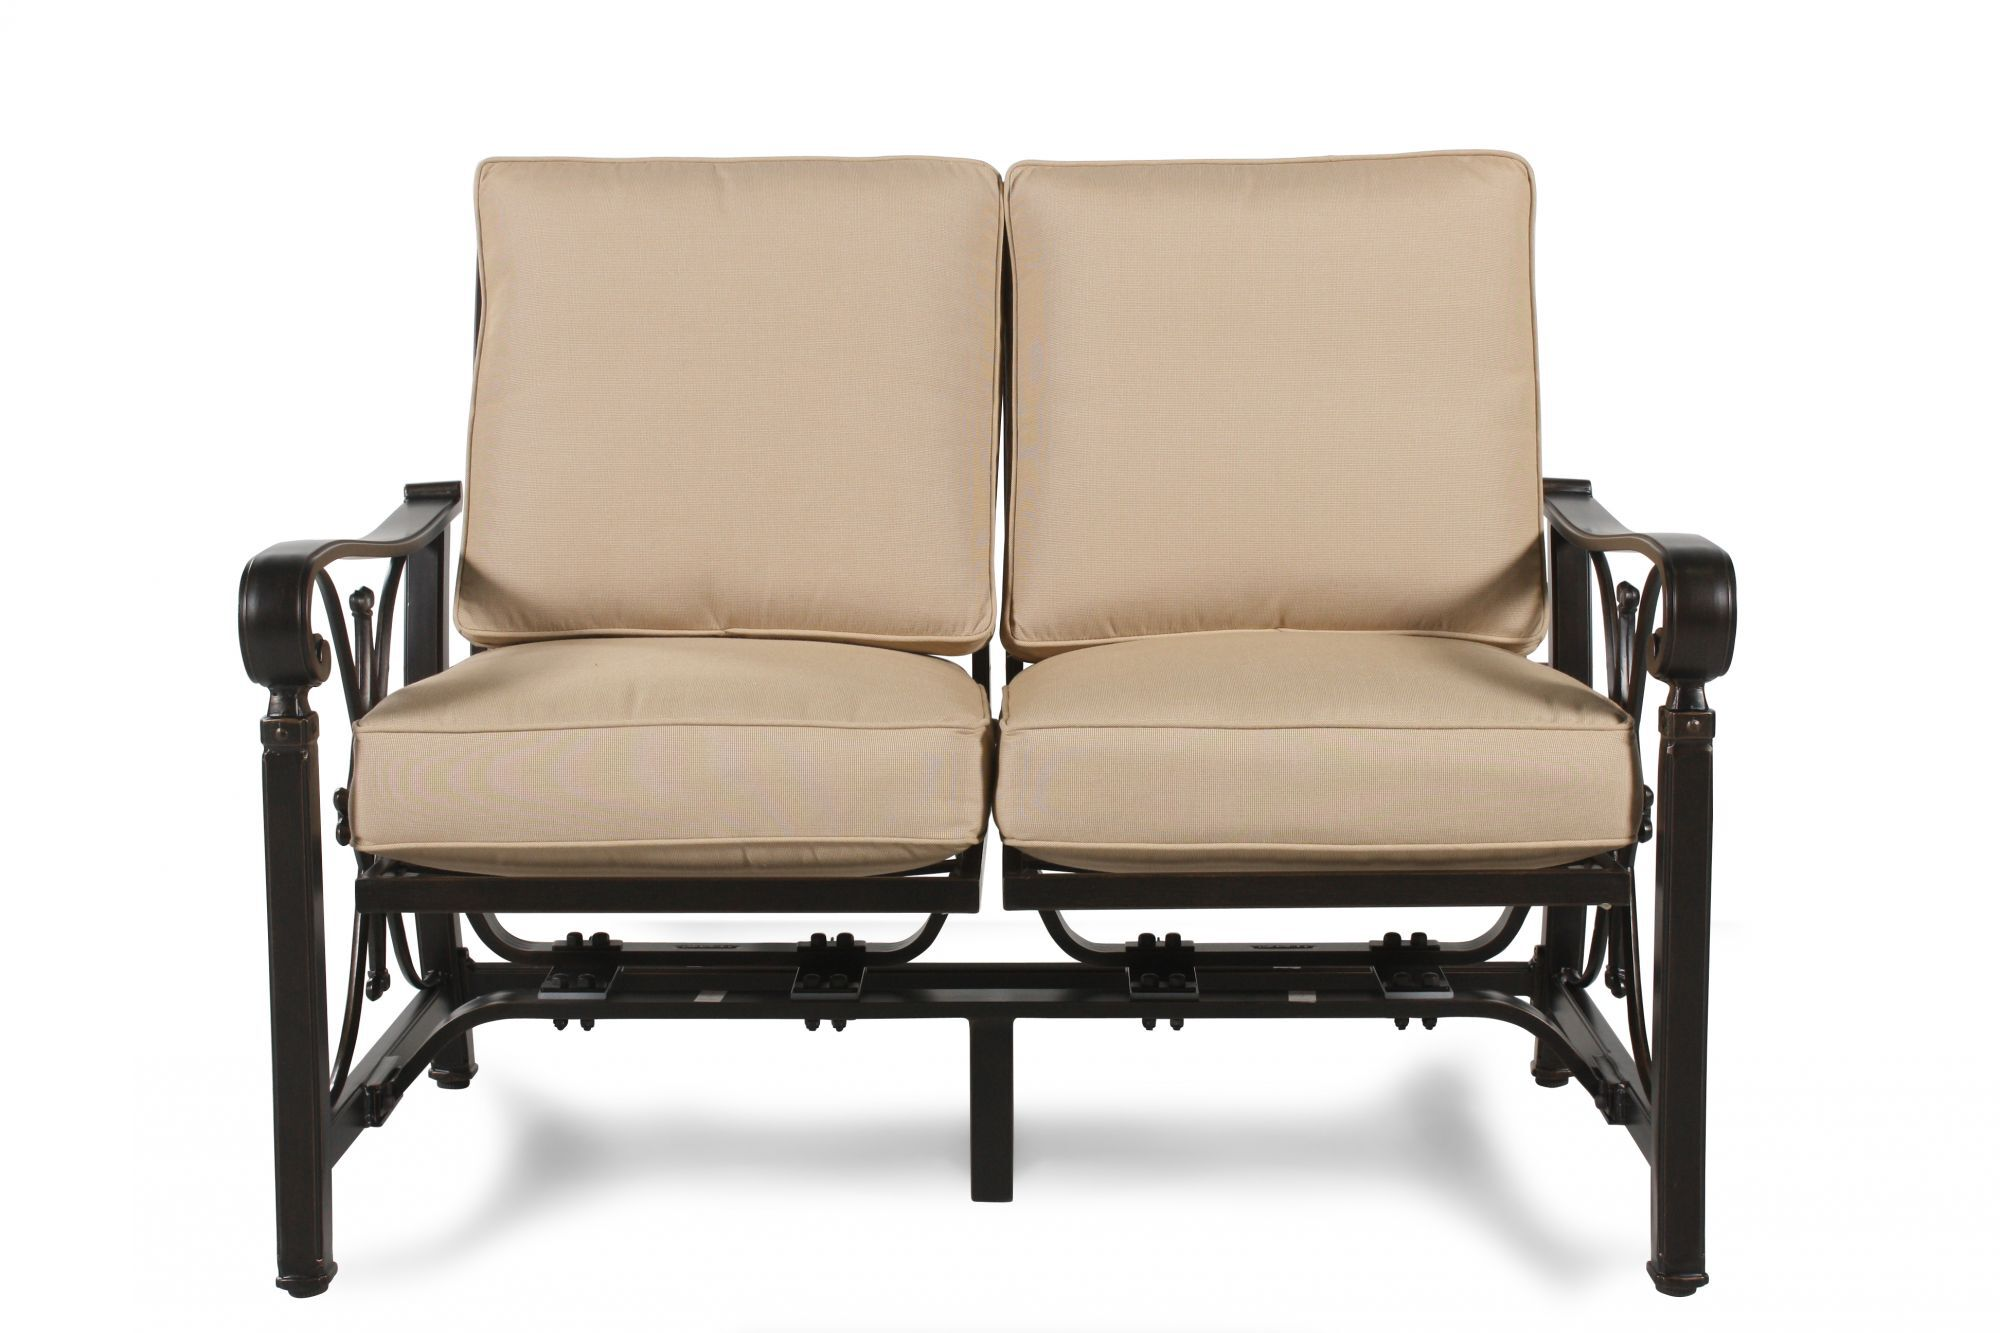 Images Aluminum Patio Loveseat With Cushion In Beige